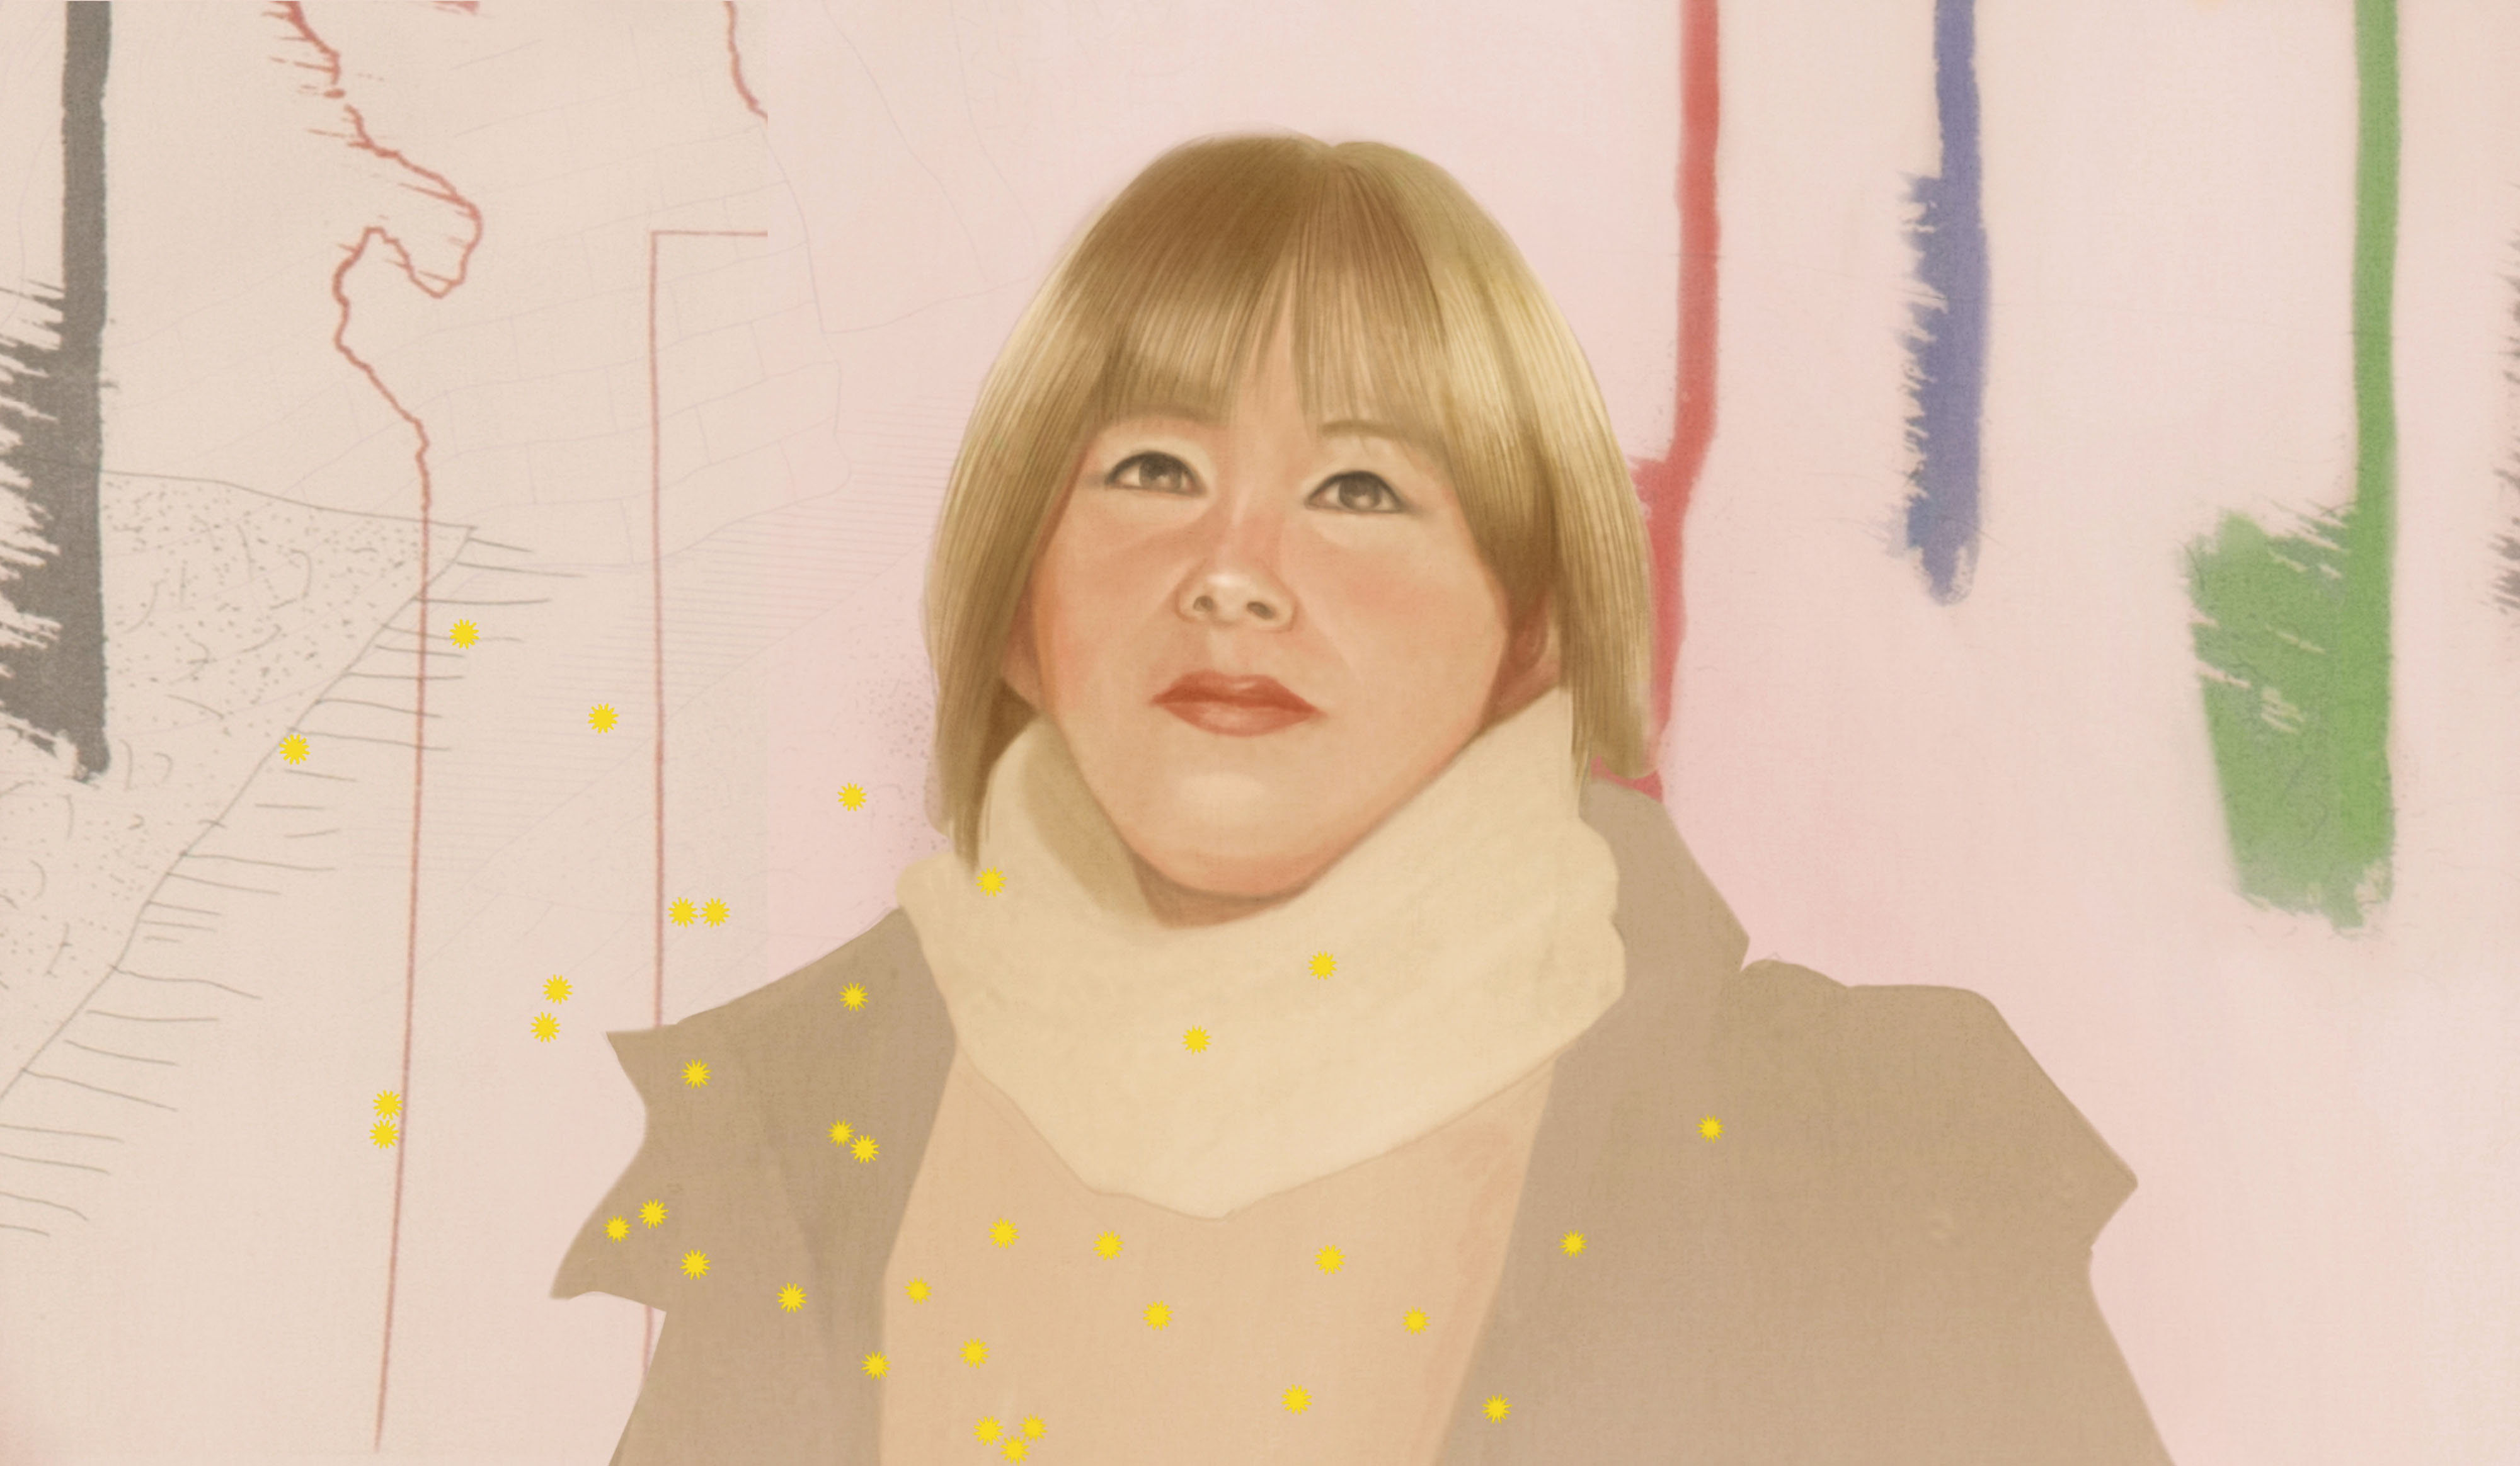 Myanna Dreaver. (Photo illustration by Hsiao-Ron Cheng)